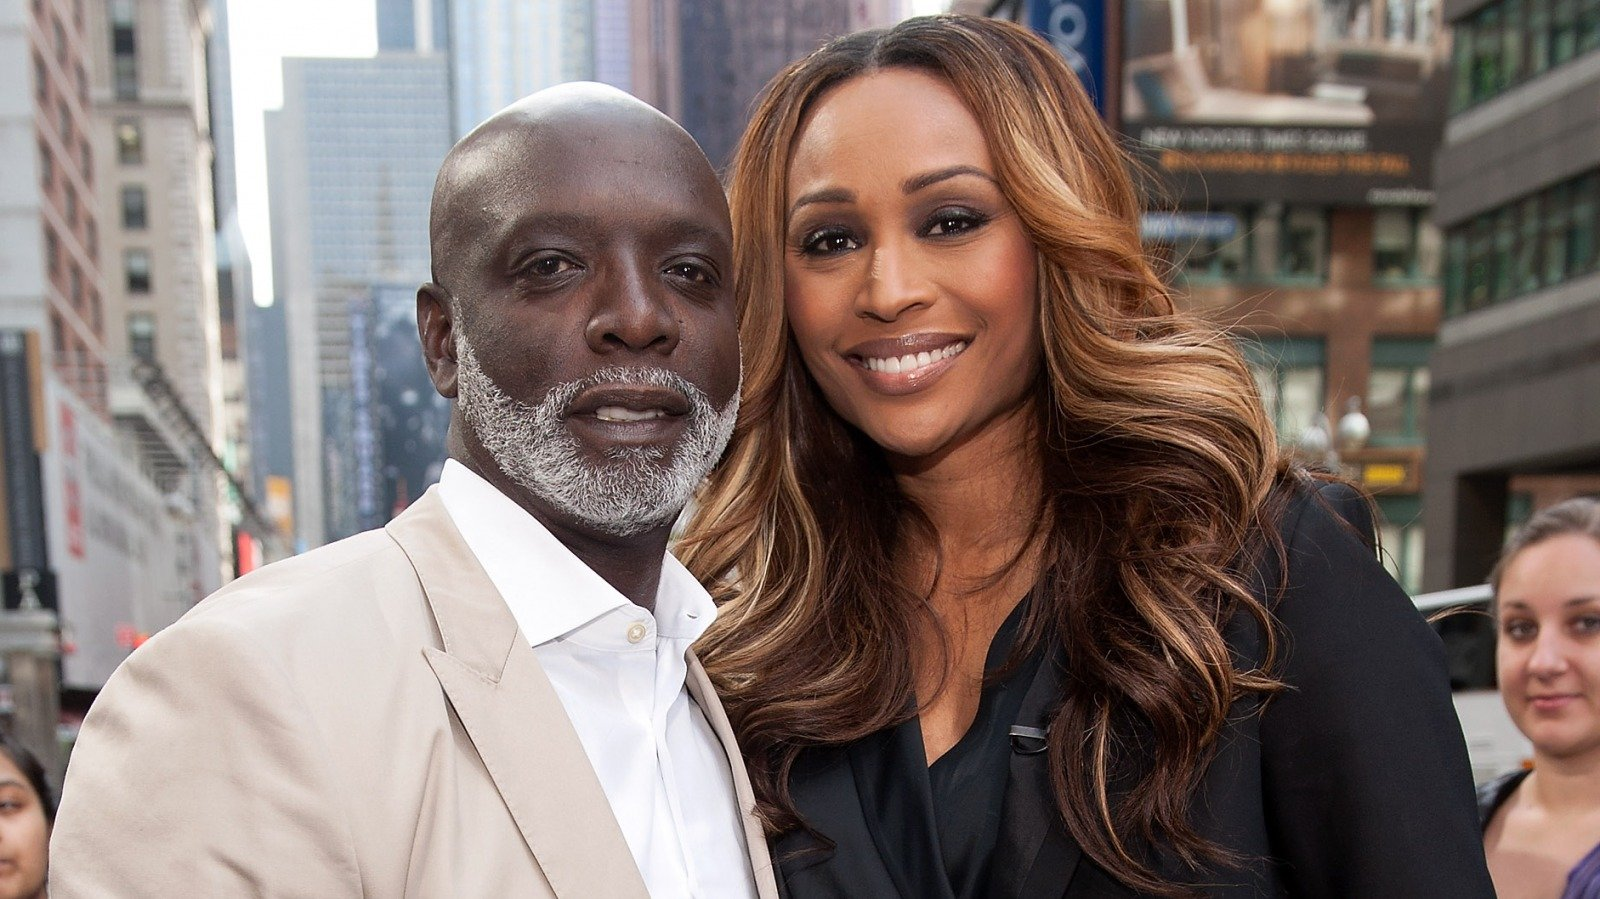 Peter Thomas Admits He Felt Blindsided And 'Hurt' When Ex-Wife Cynthia Bailey Sued Him For $170K!